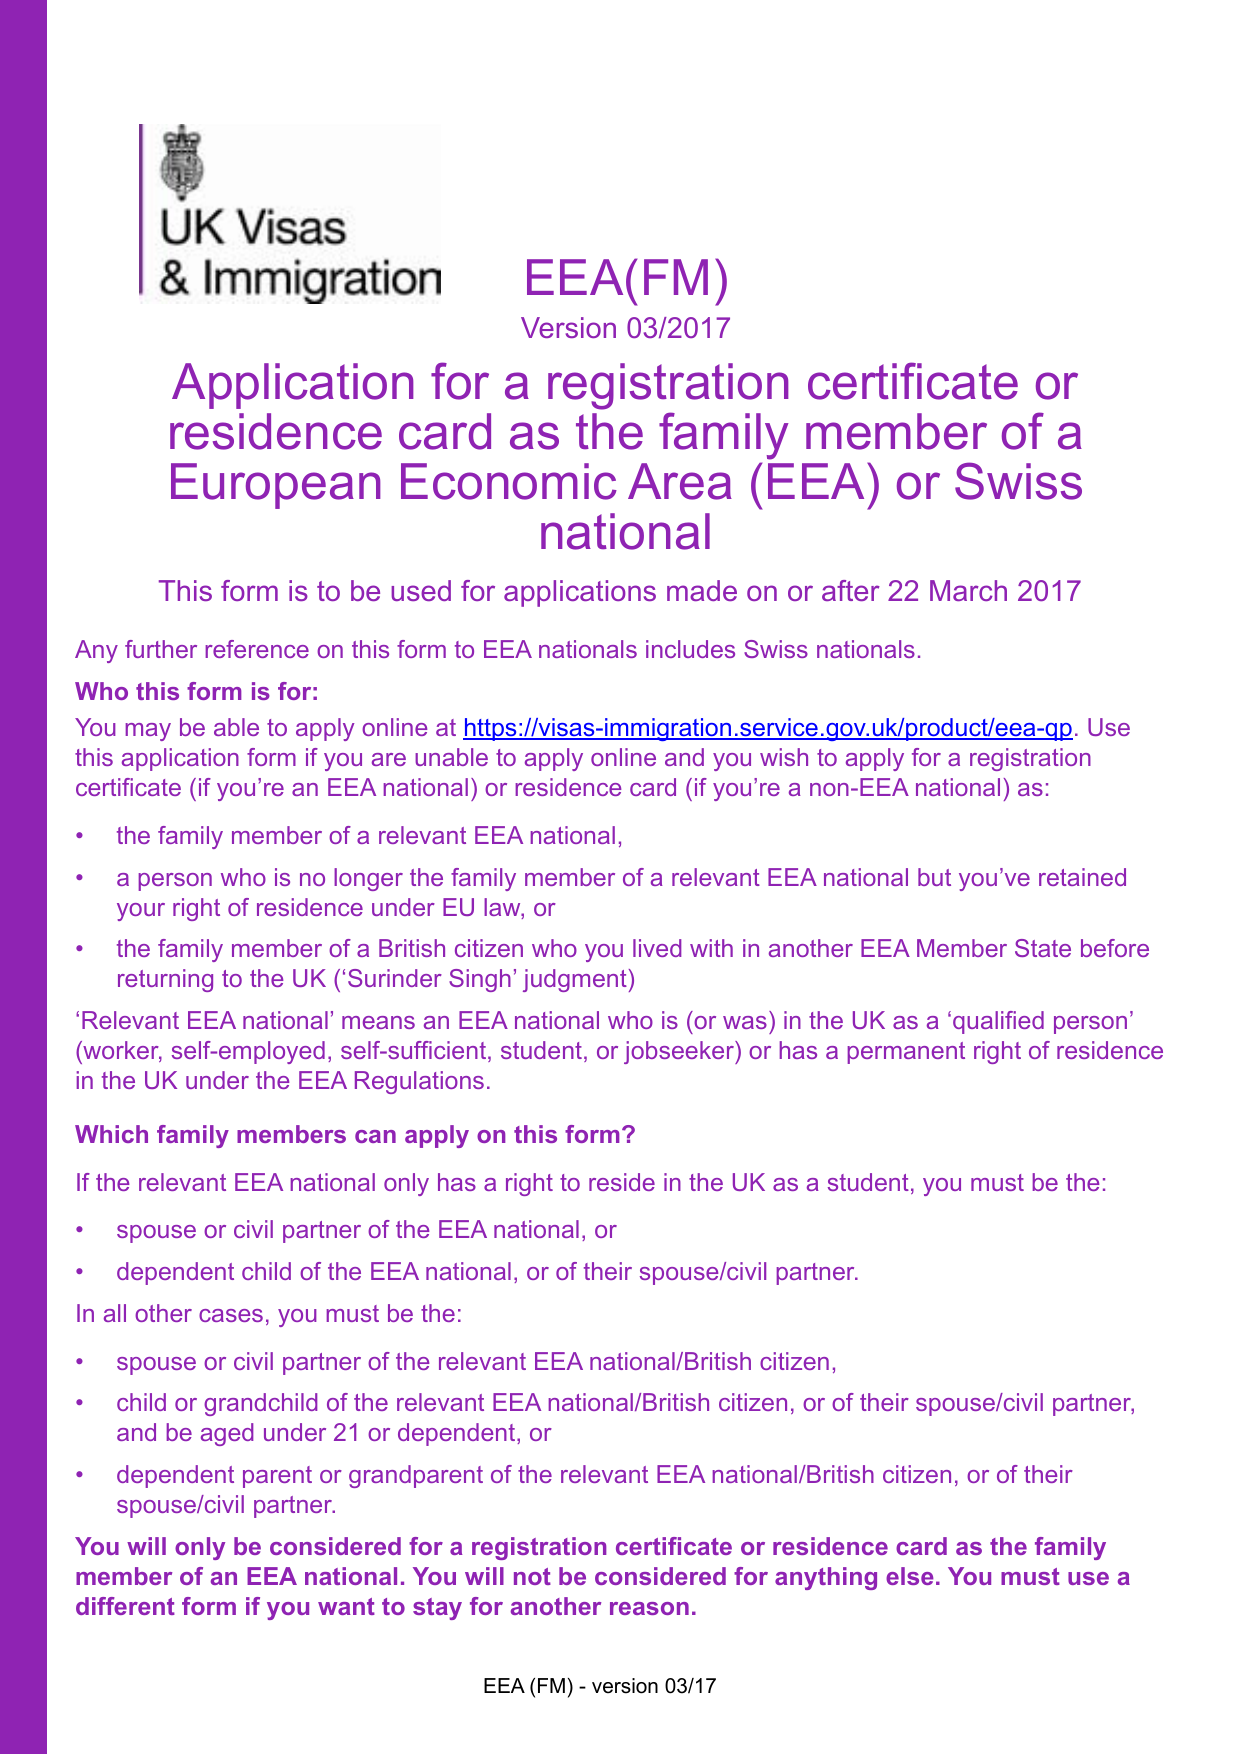 Form explorer attachment application for a registration certificate or residence card as the family member of an eea or swiss national form eea fm solutioingenieria Images